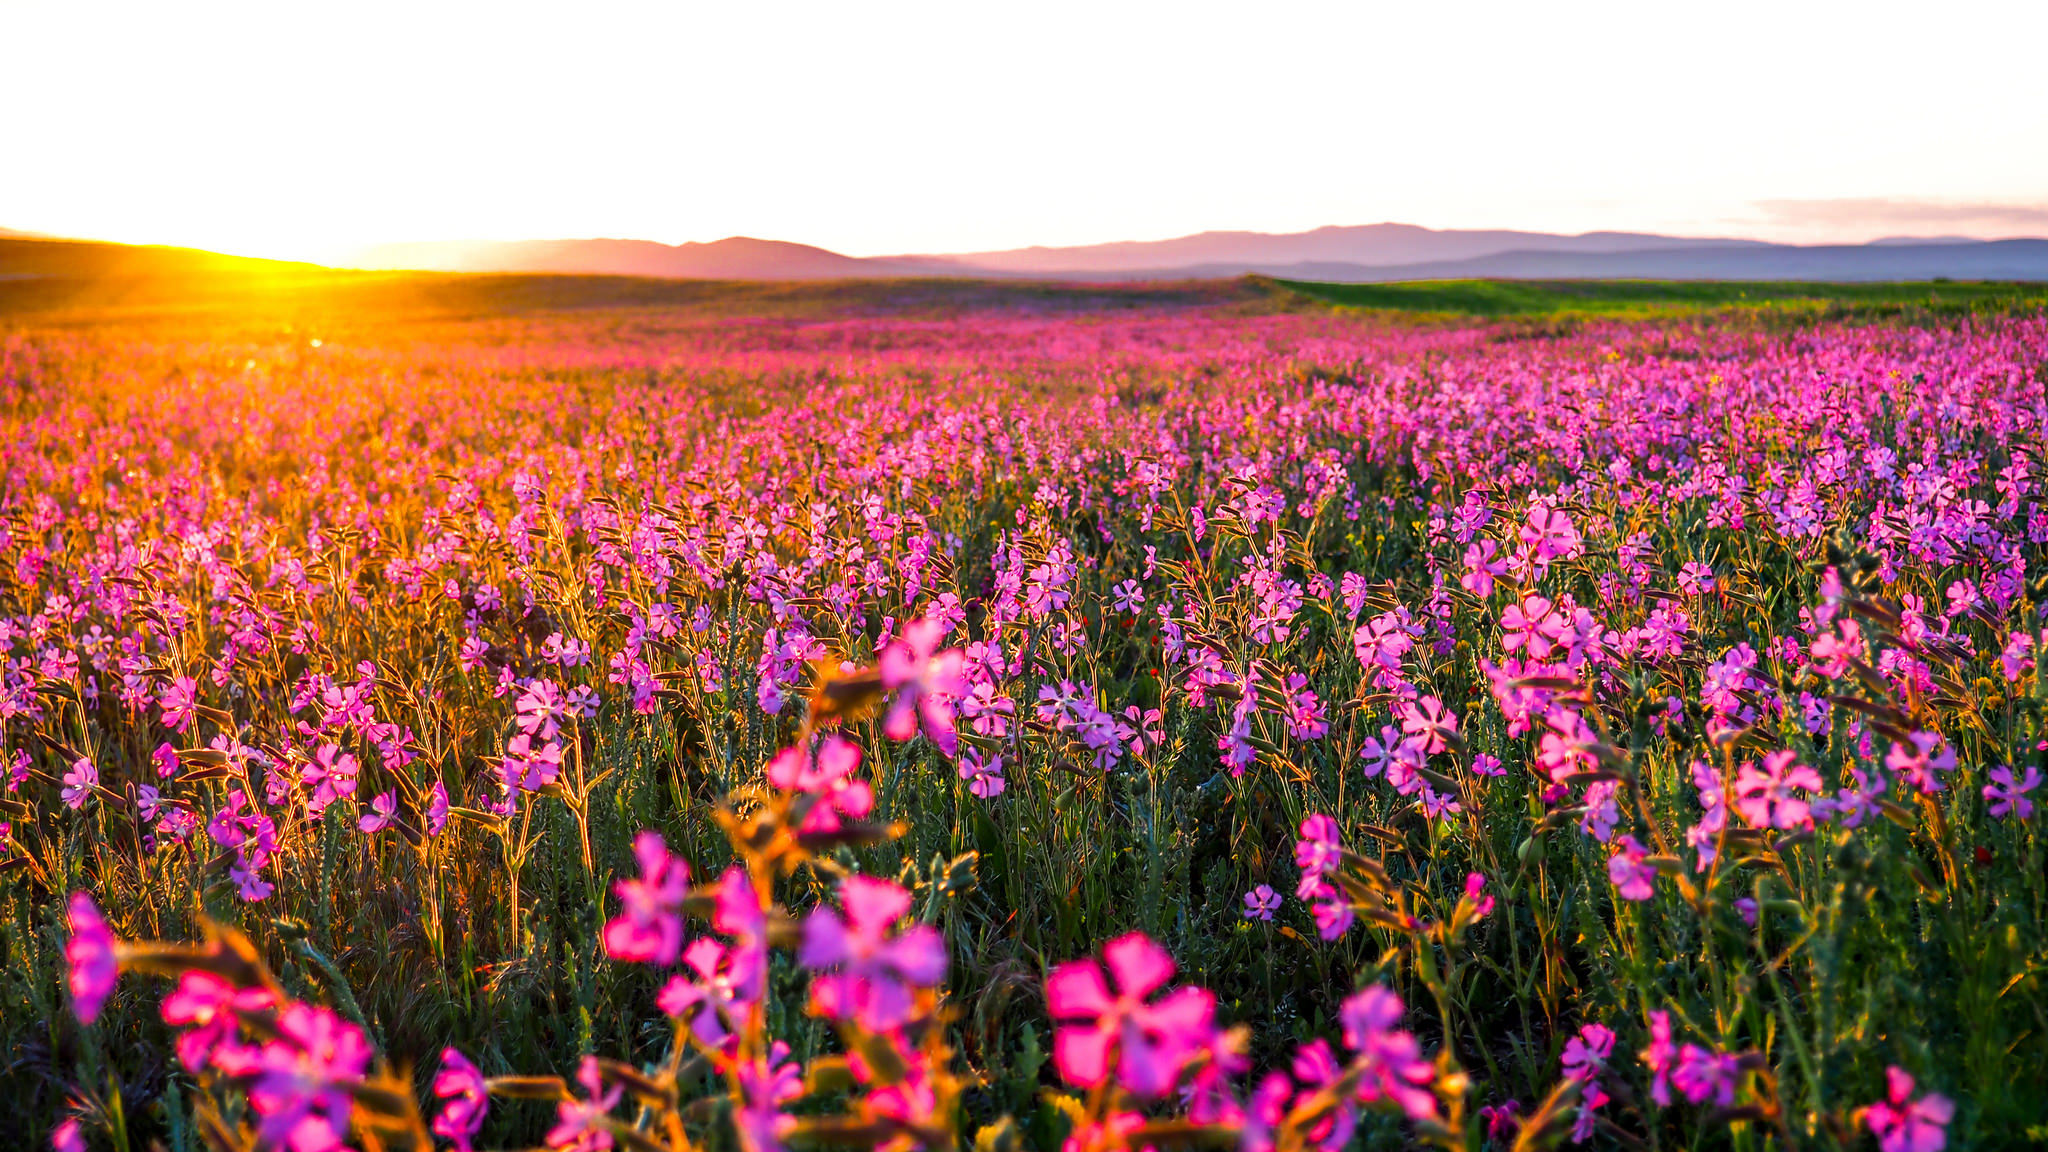 Field full hd wallpaper and background 2048x1152 id 686307 for Flower landscape